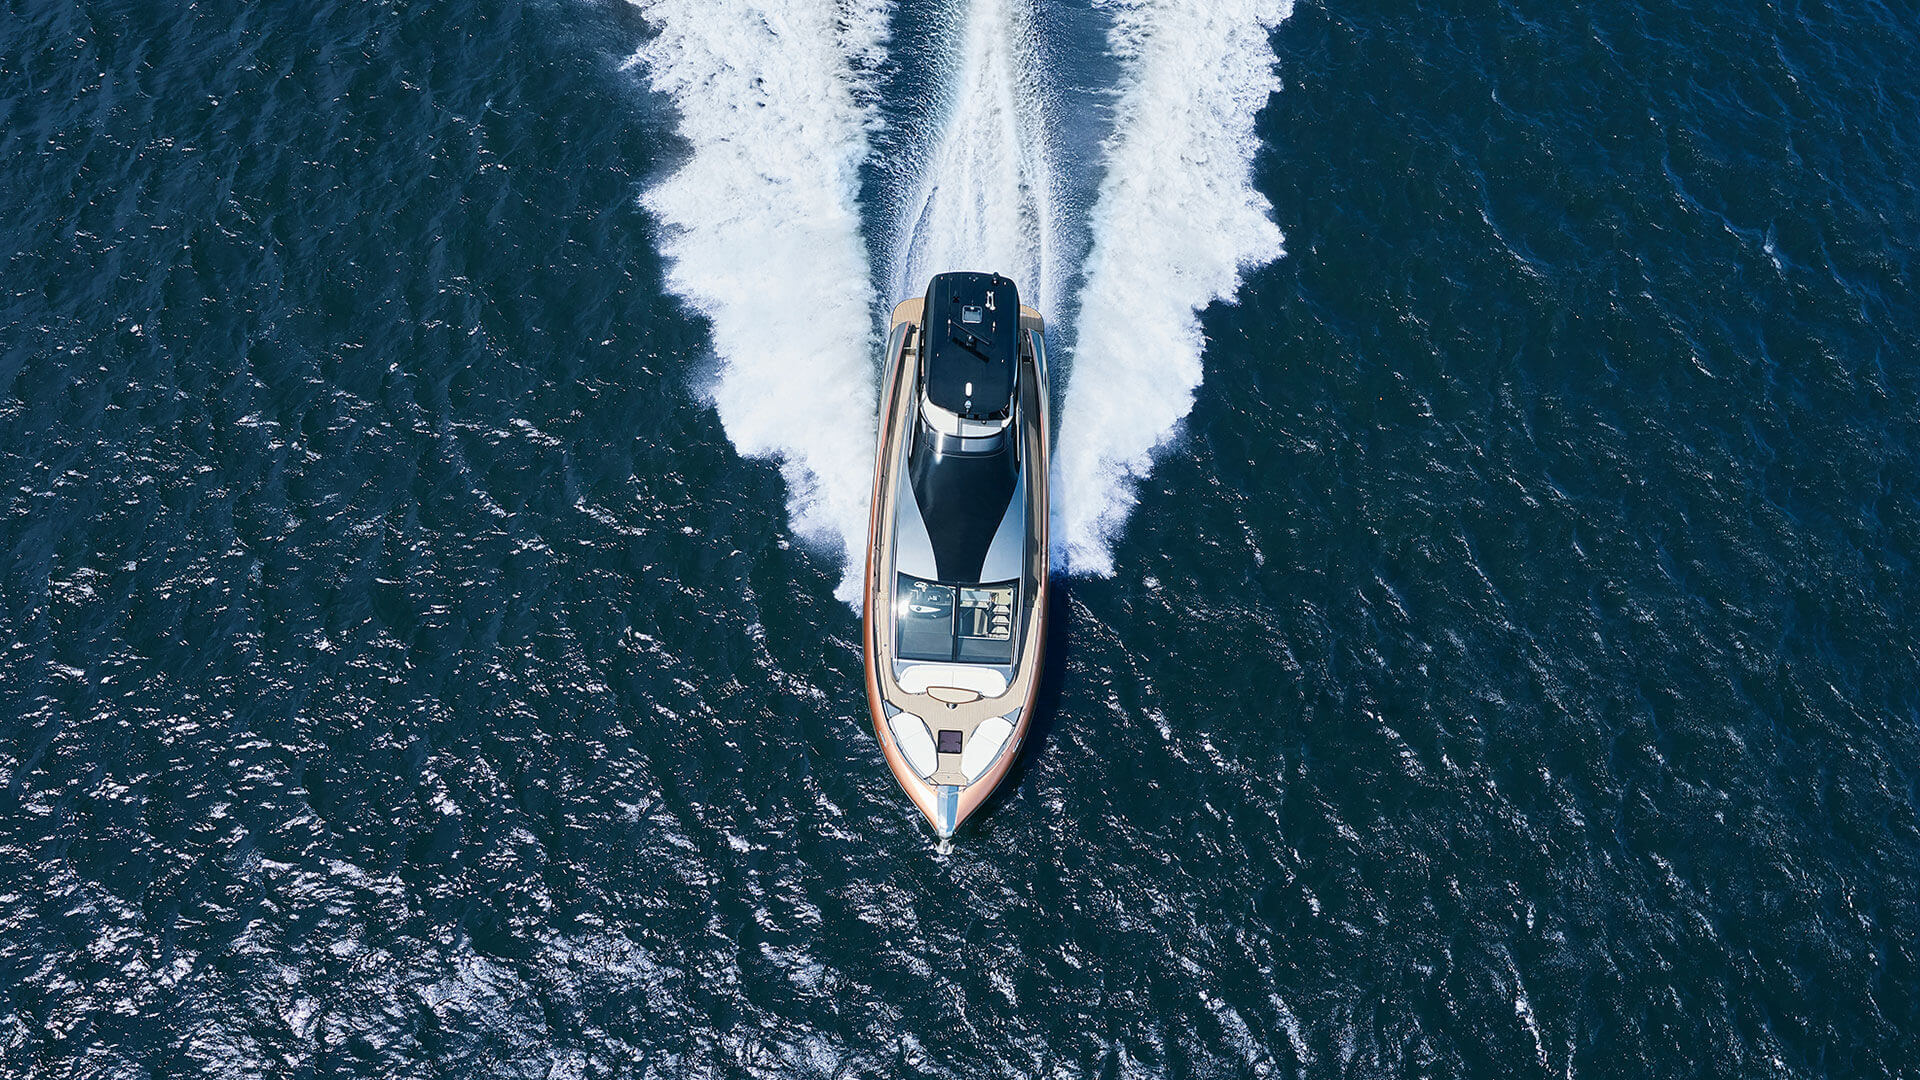 2020 lexus yacht ly 650 premiere gallery 01 video cover